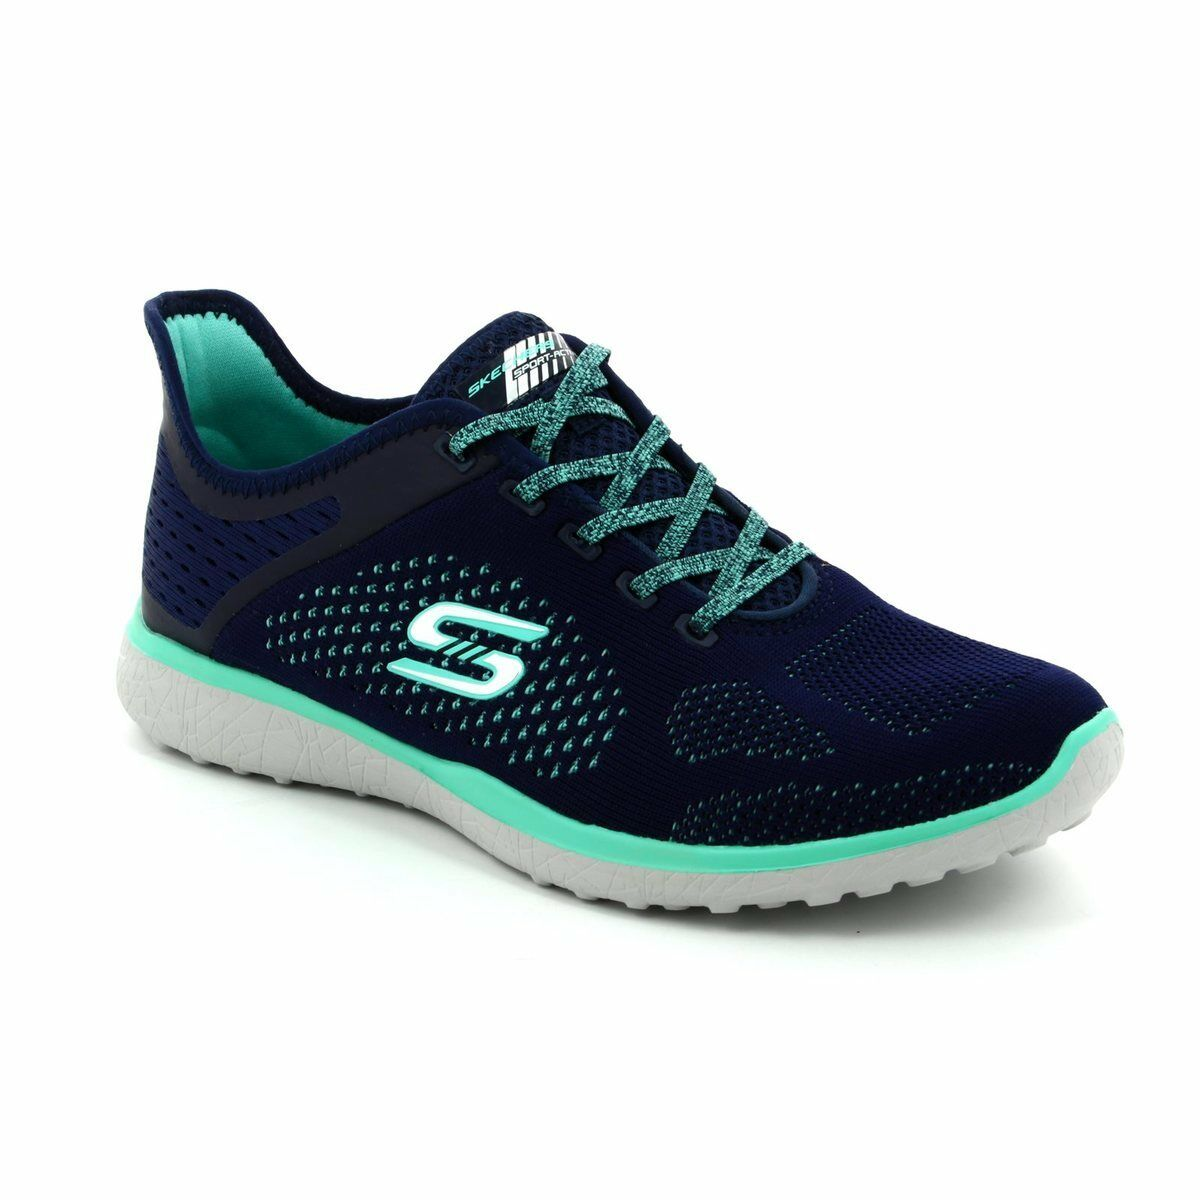 Skechers Navy 23327 Lace Up Trainers UK 4 EU 37 JS180 XX 07